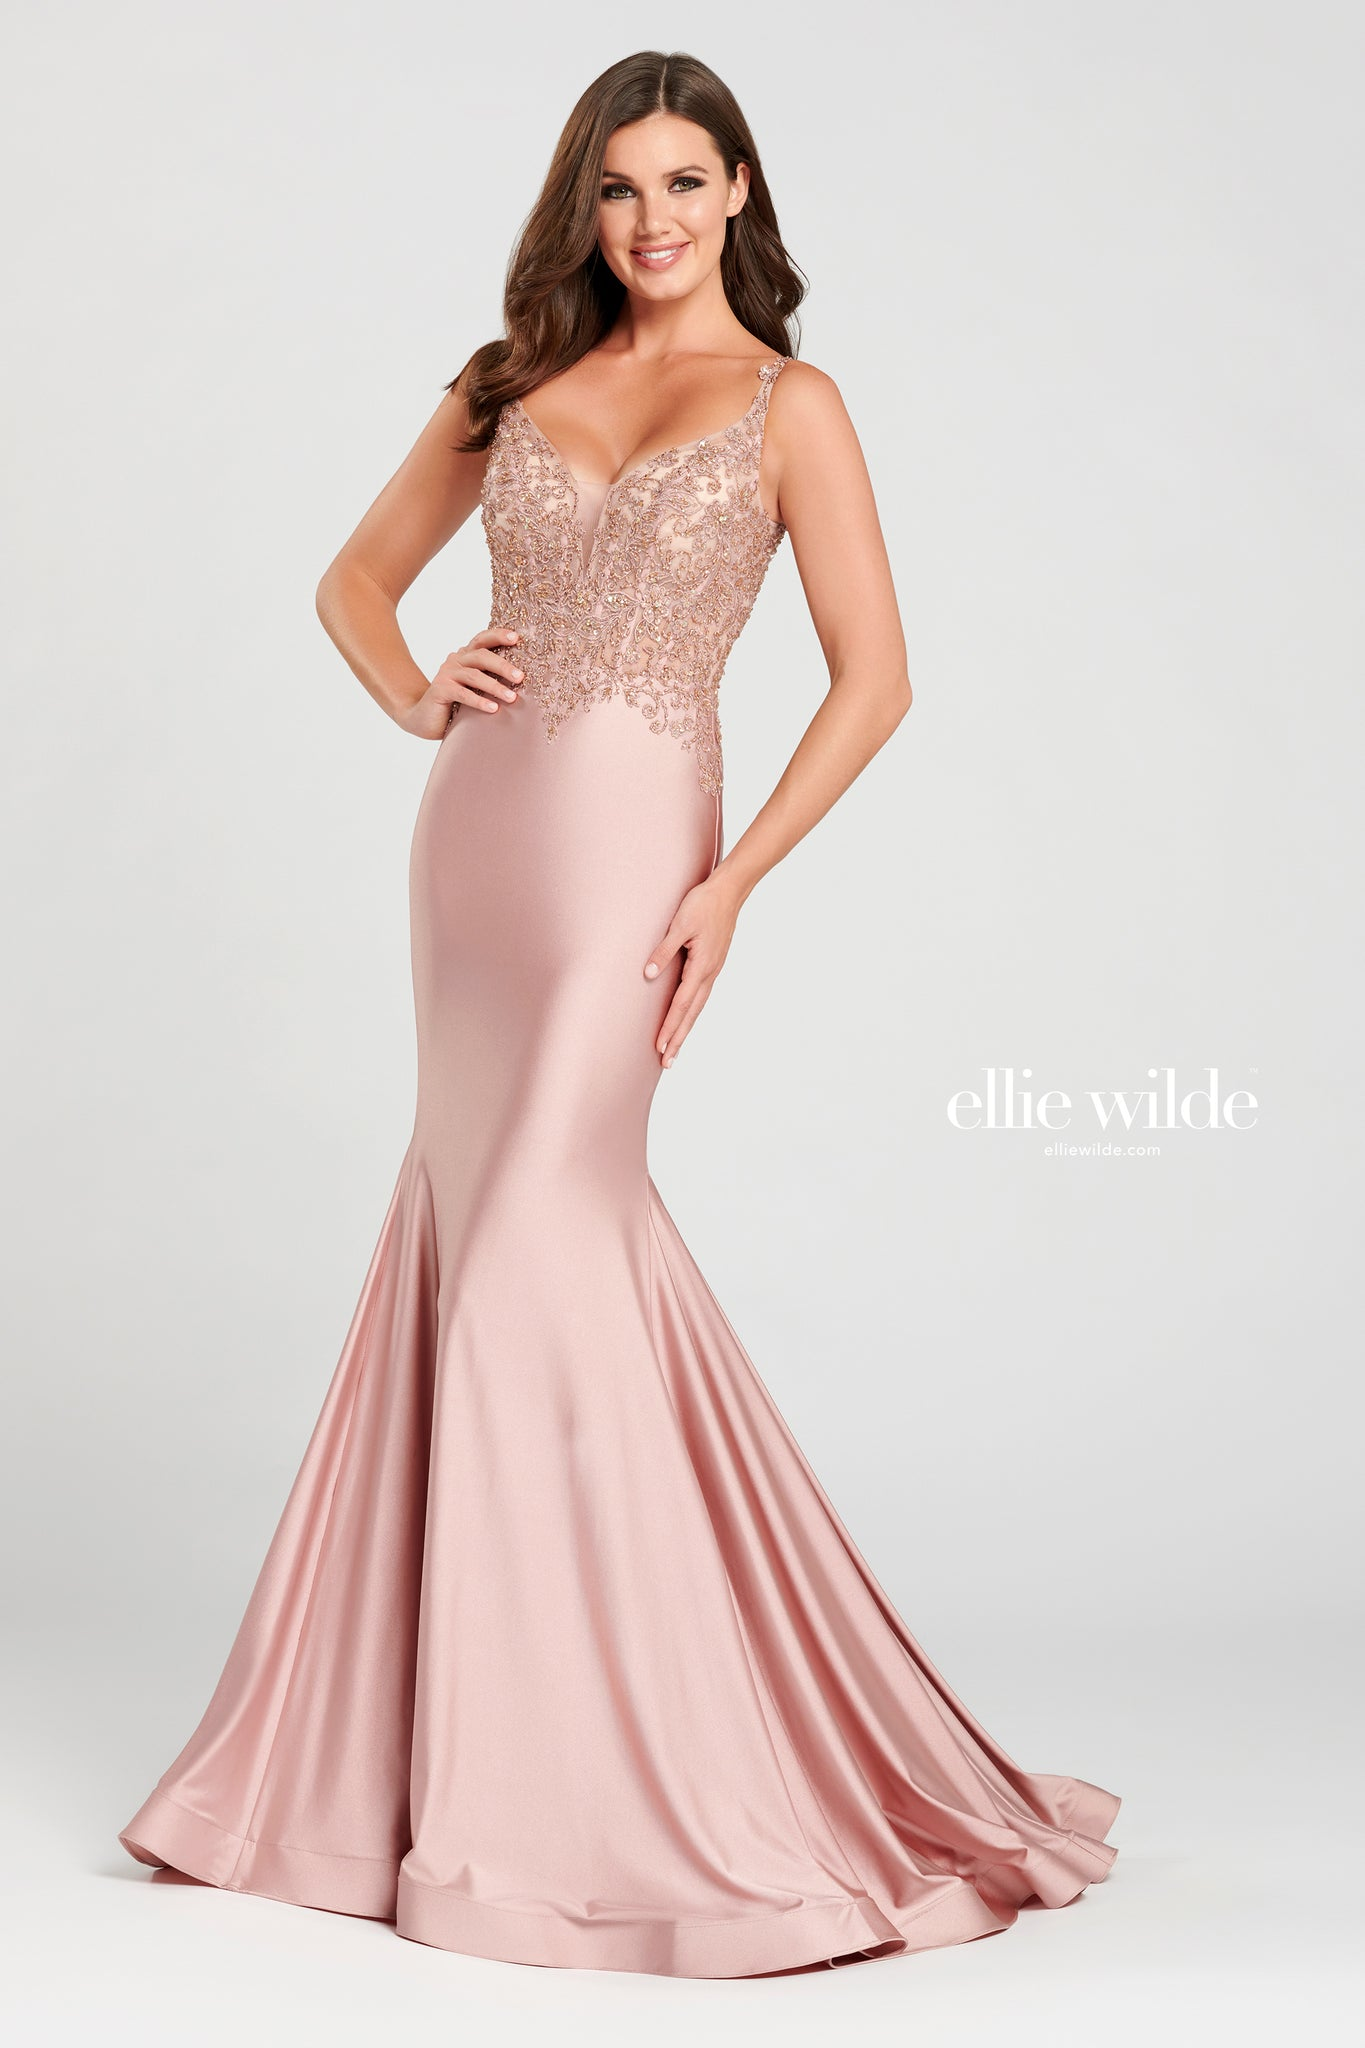 Ellie Wilde Rose Satin Evening Gown - Gissings Boutique